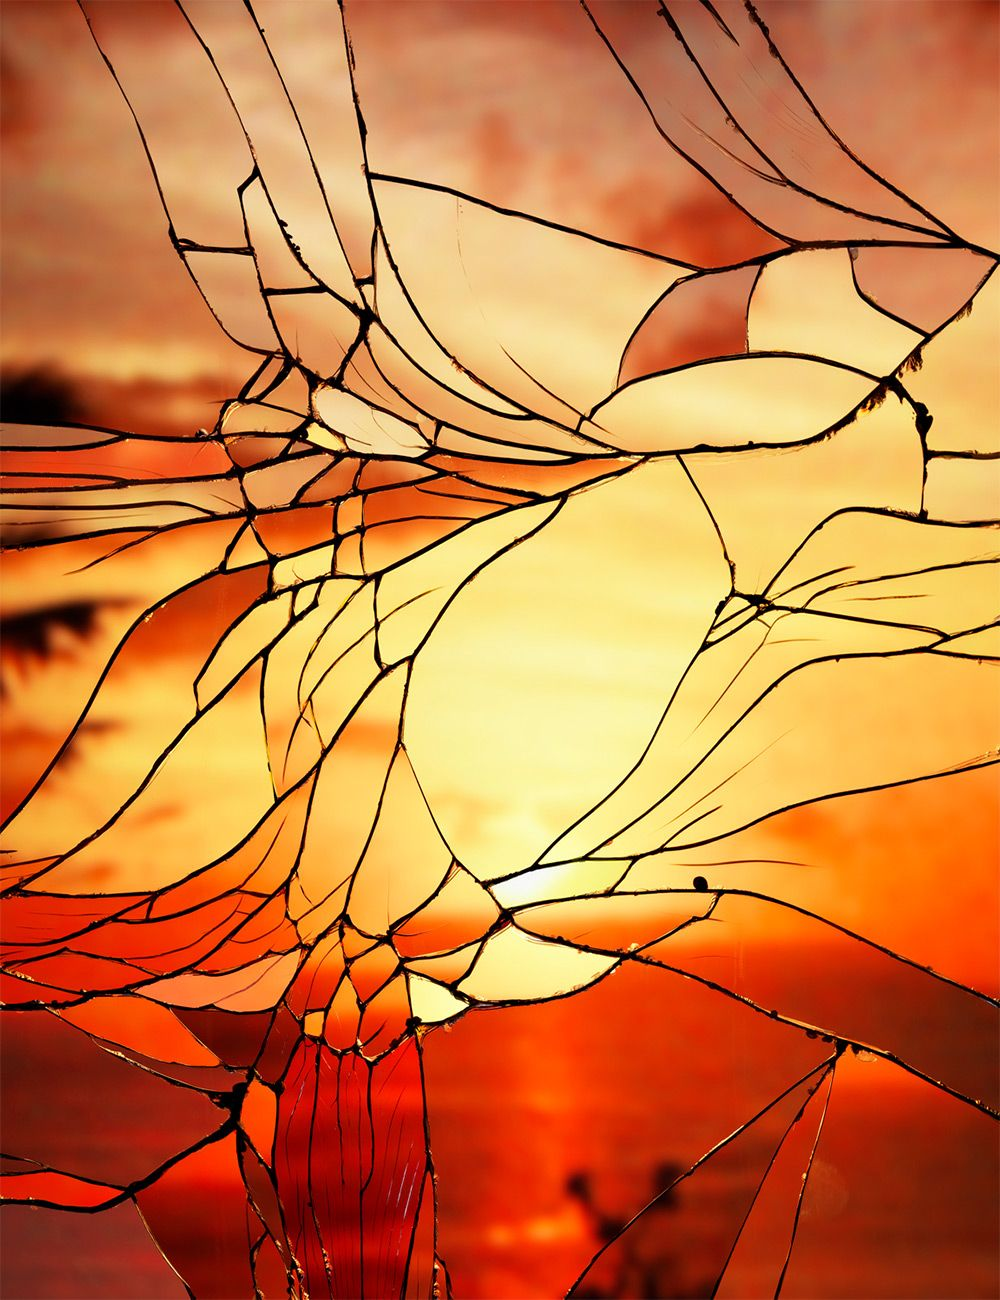 Sunsets look like stained glass art when captured through shattered ...